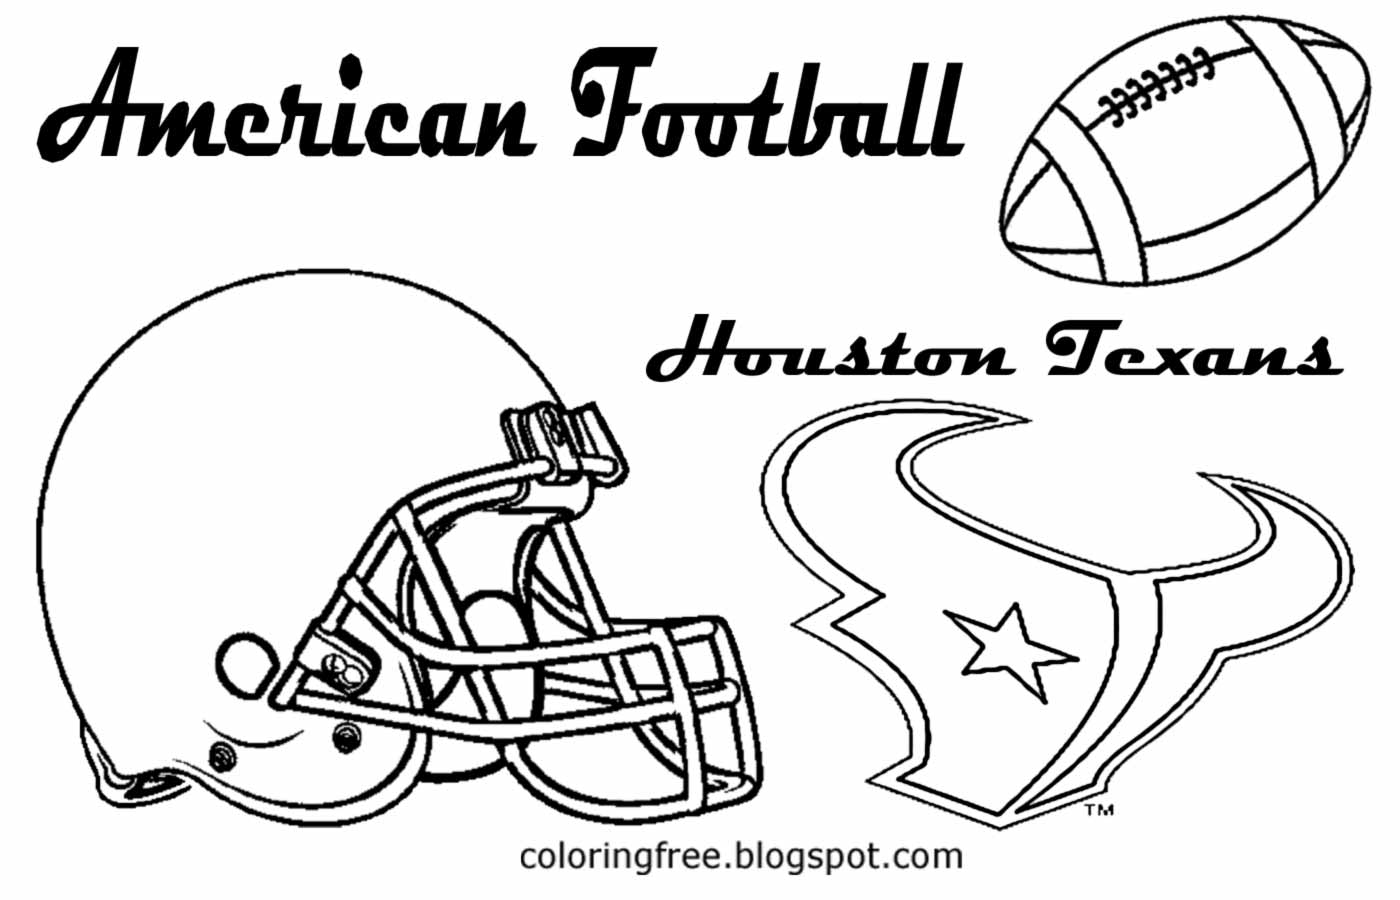 Houston texans coloring pages ~ Free Coloring Pages Printable Pictures To Color Kids ...